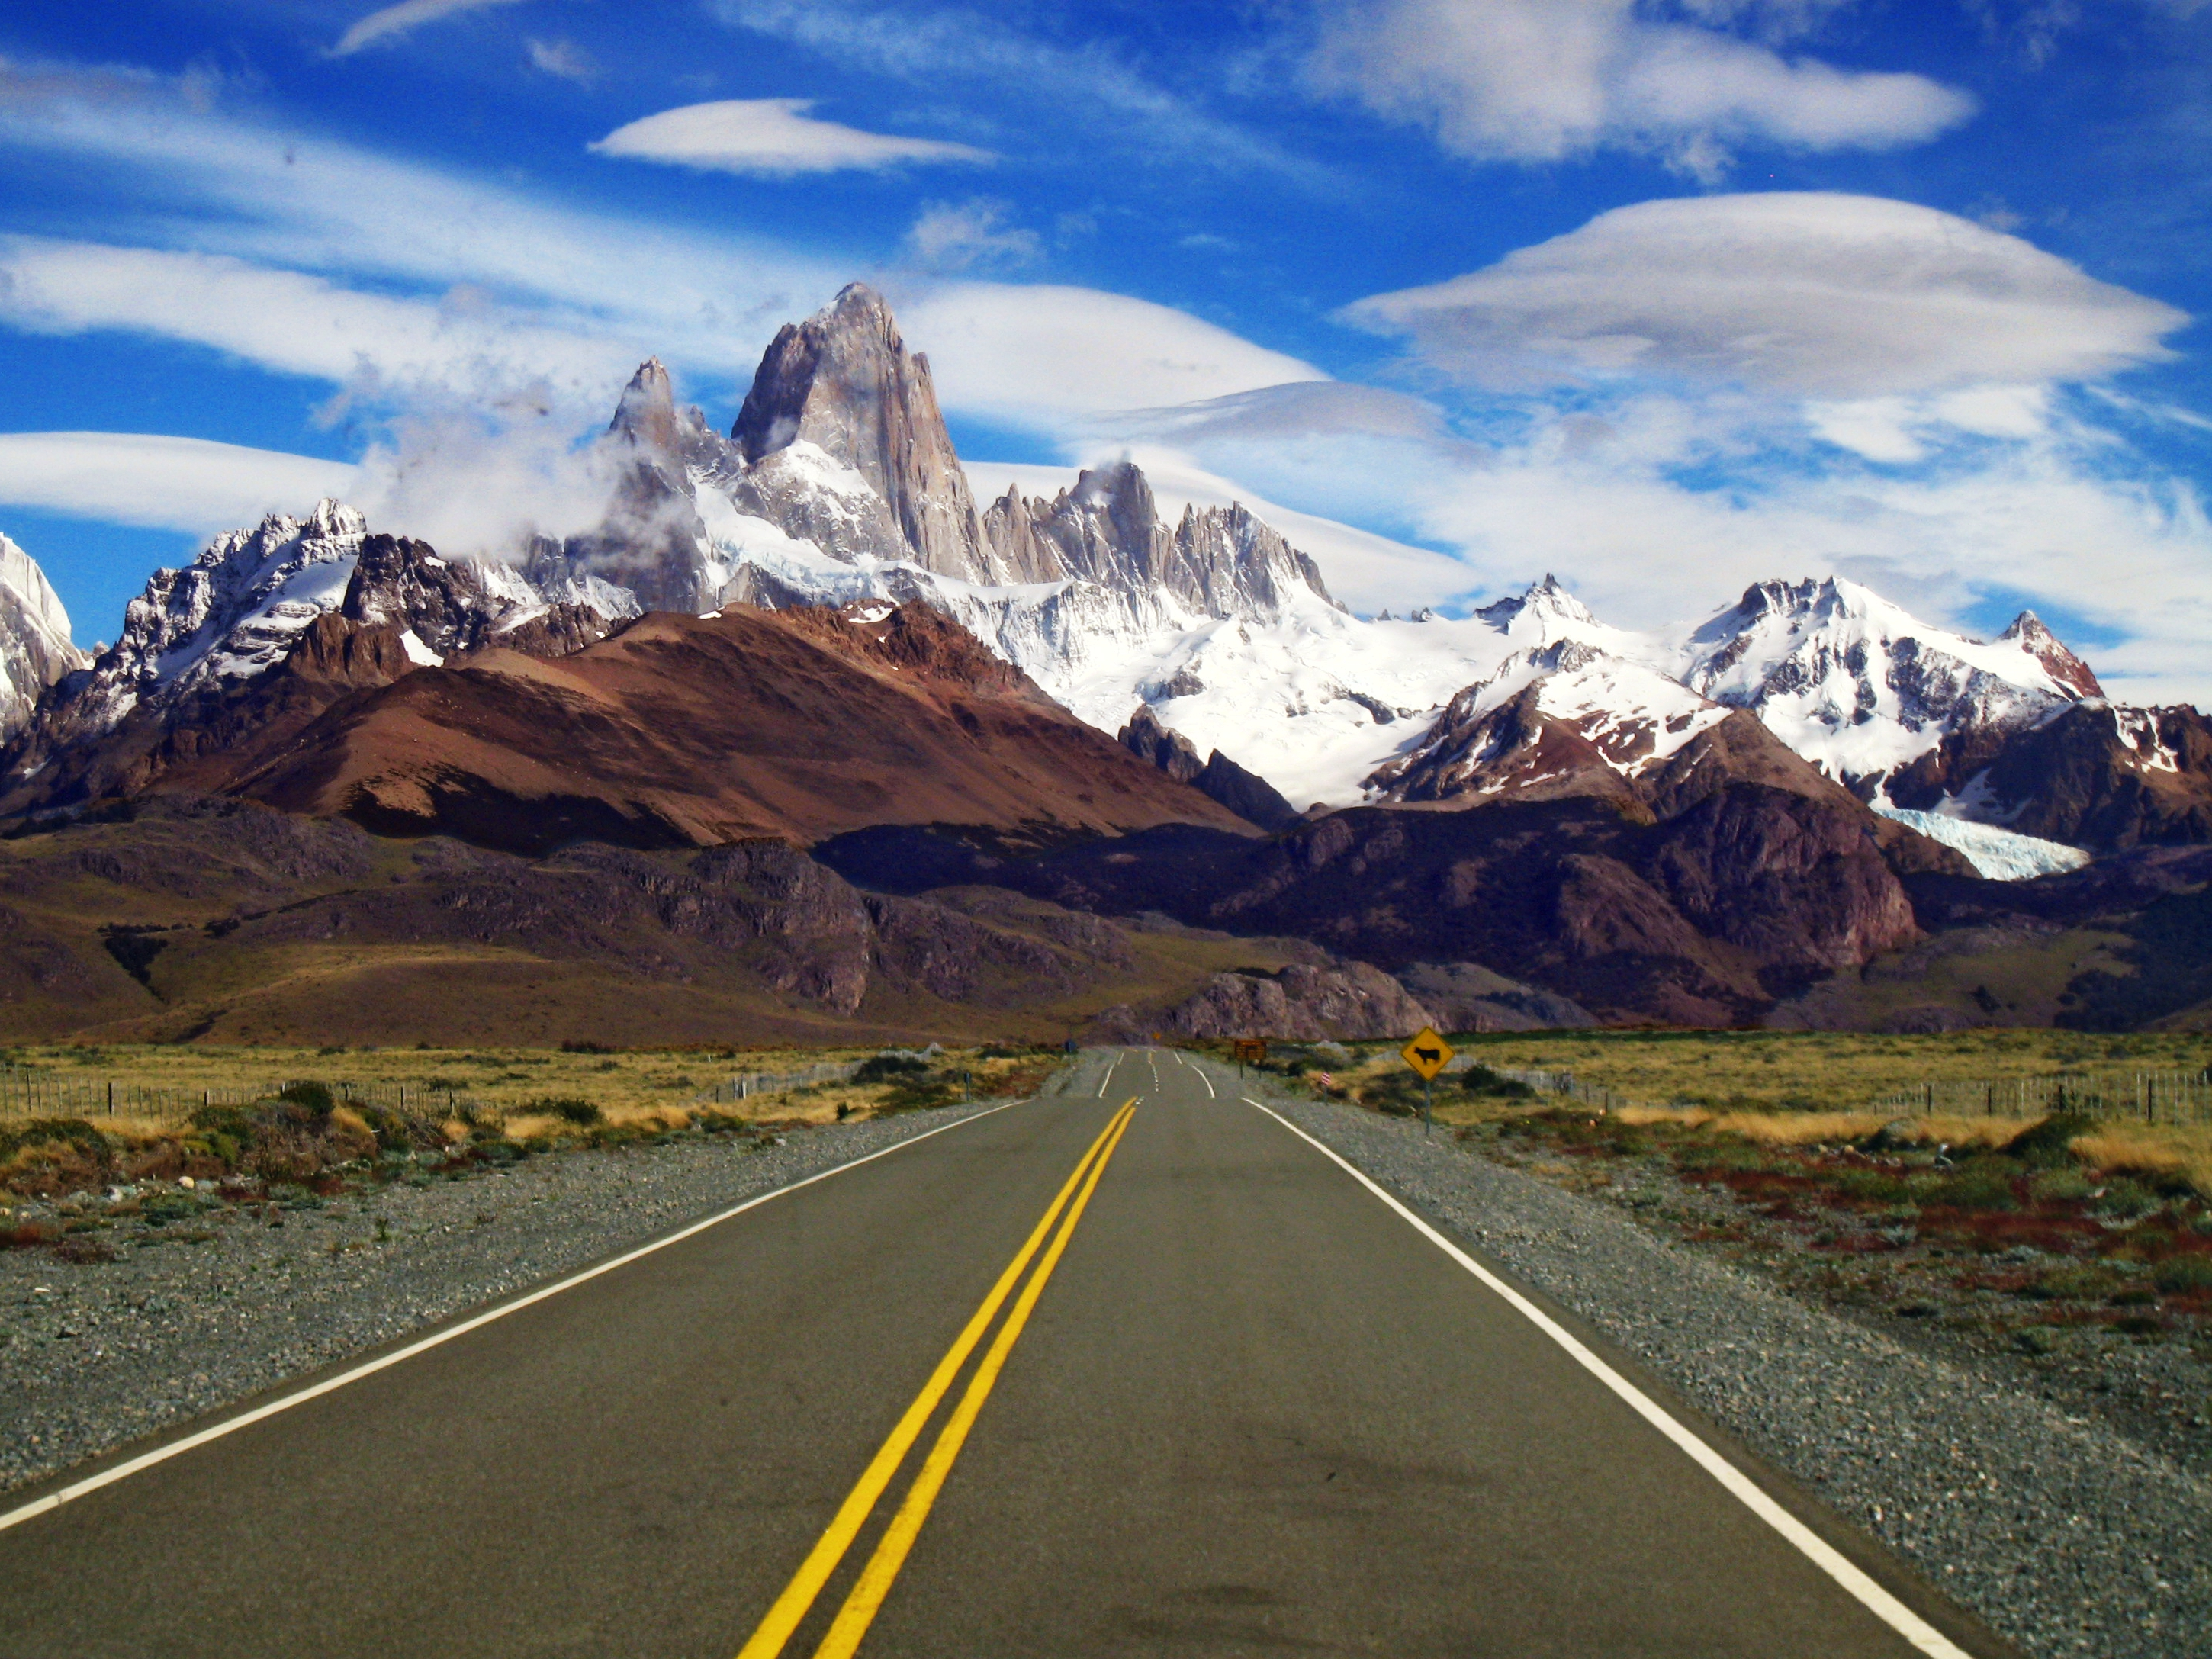 Patagonia Pictures South America >> Fitz Roy - Mountain in Los Glaciares National Park - Thousand Wonders